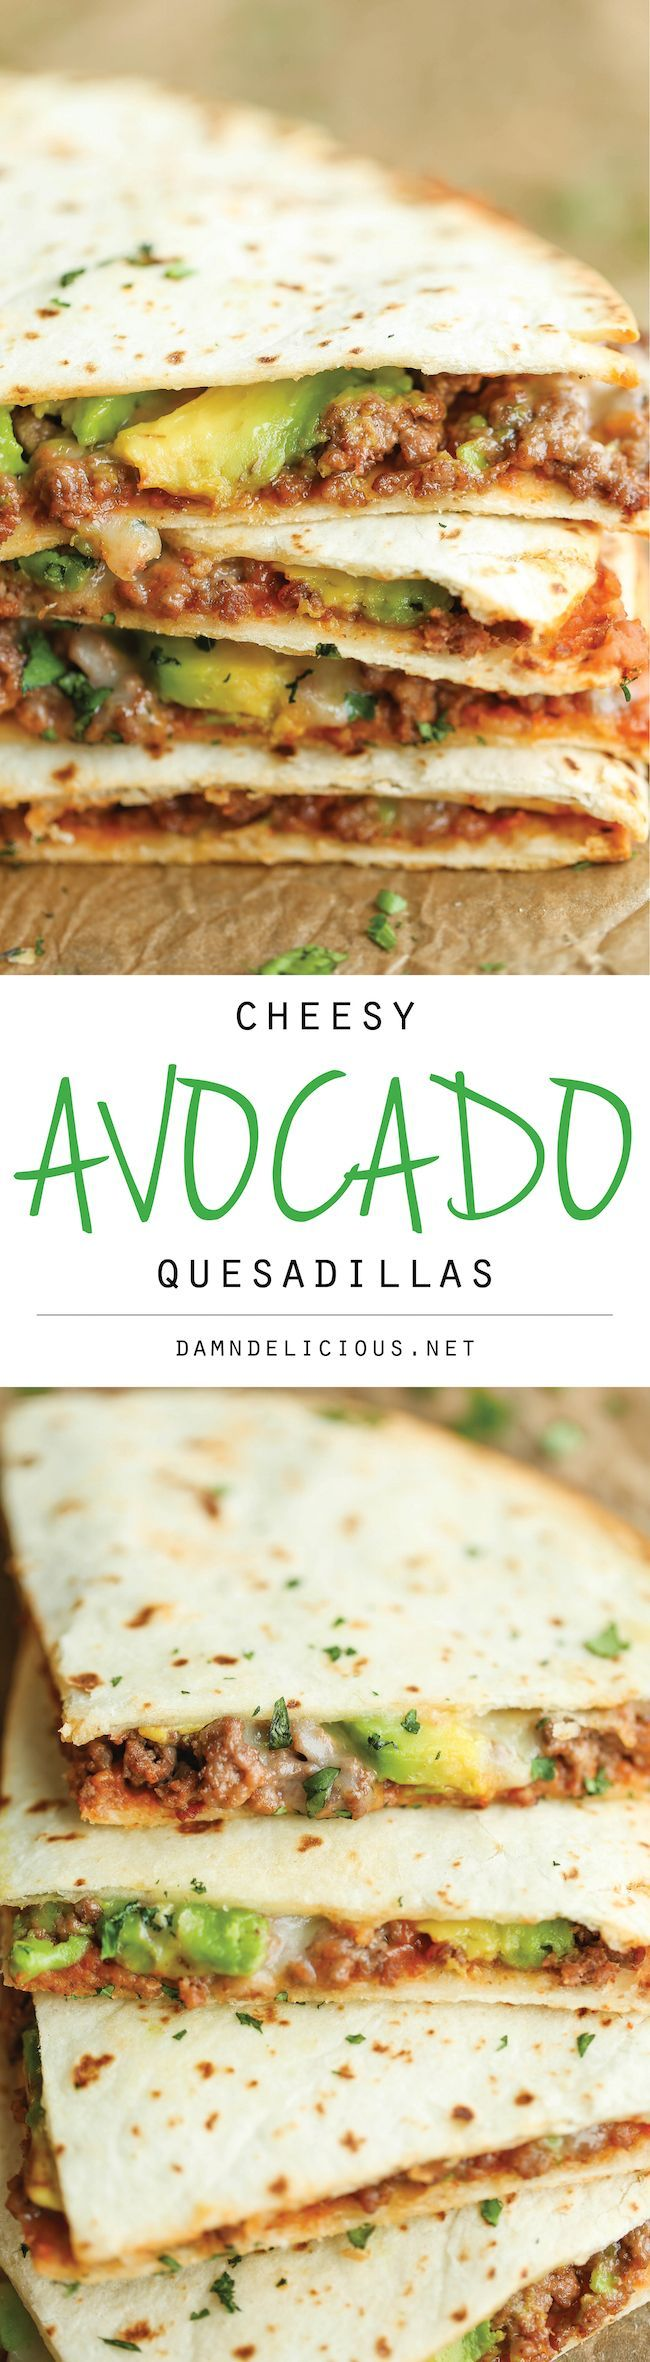 Cheesy Avocado Quesadillas - Easy, no-fuss quesadillas that are perfectly crisp and amazingly cheesy.